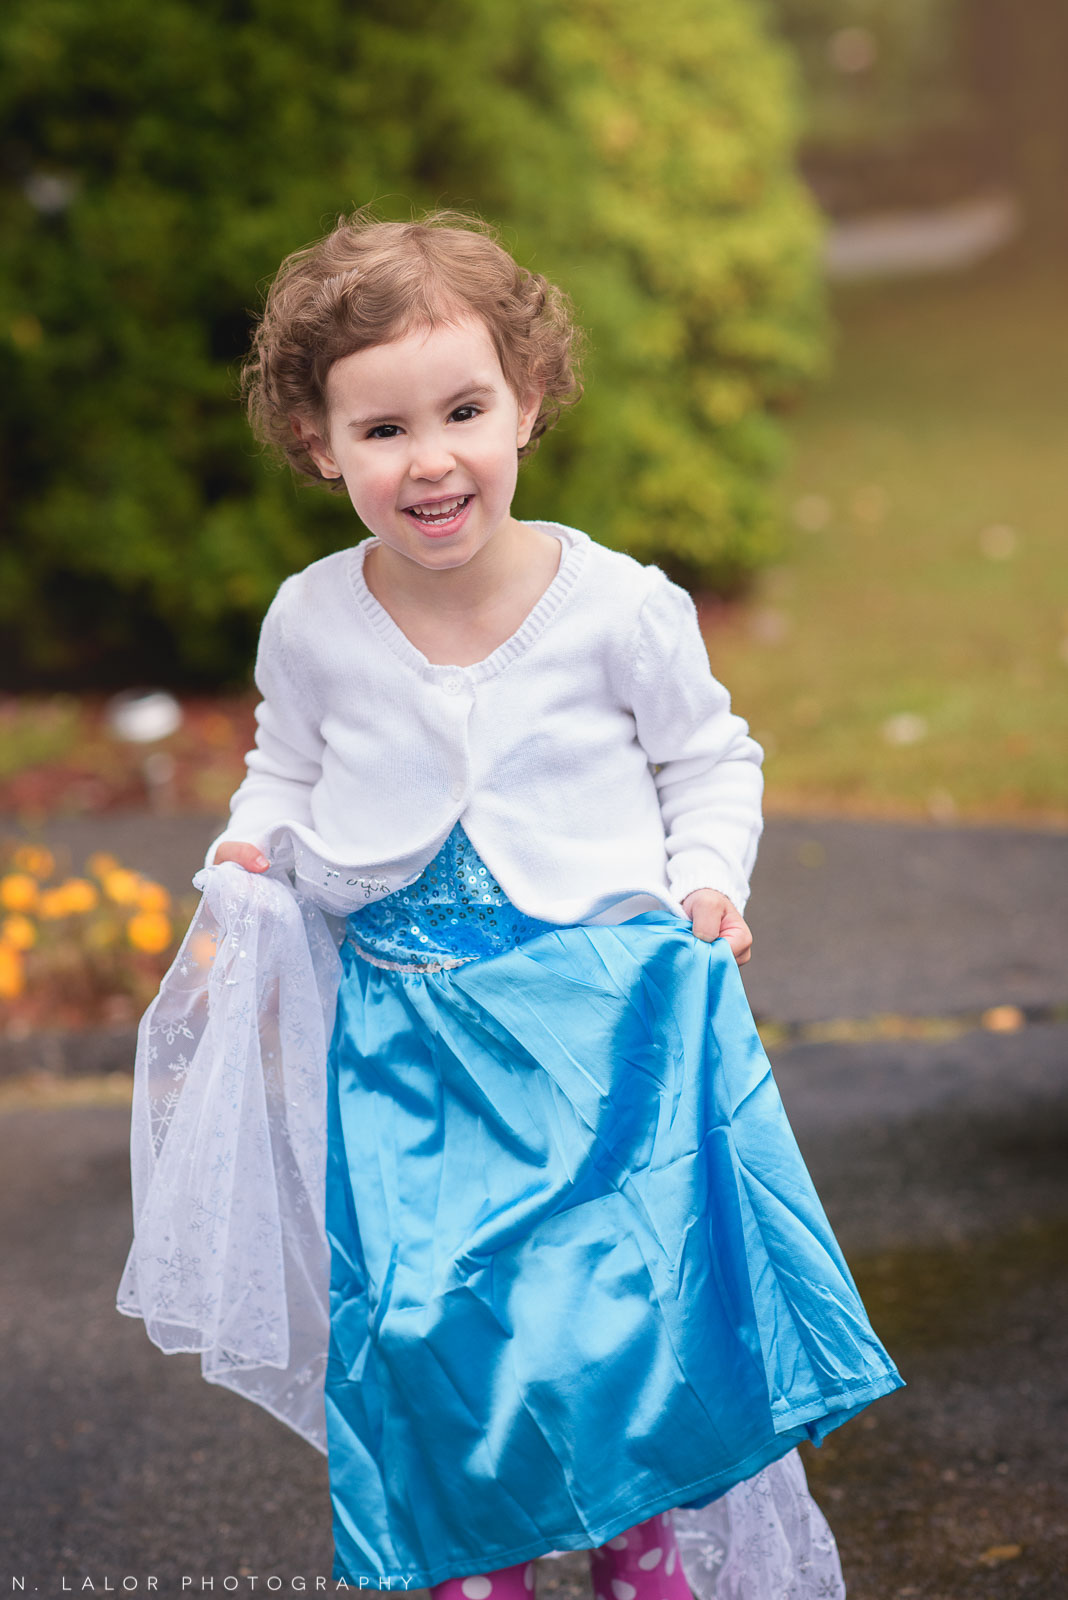 A little Elsa playing outside. Lifestyle mini photo session by N. Lalor Photography.